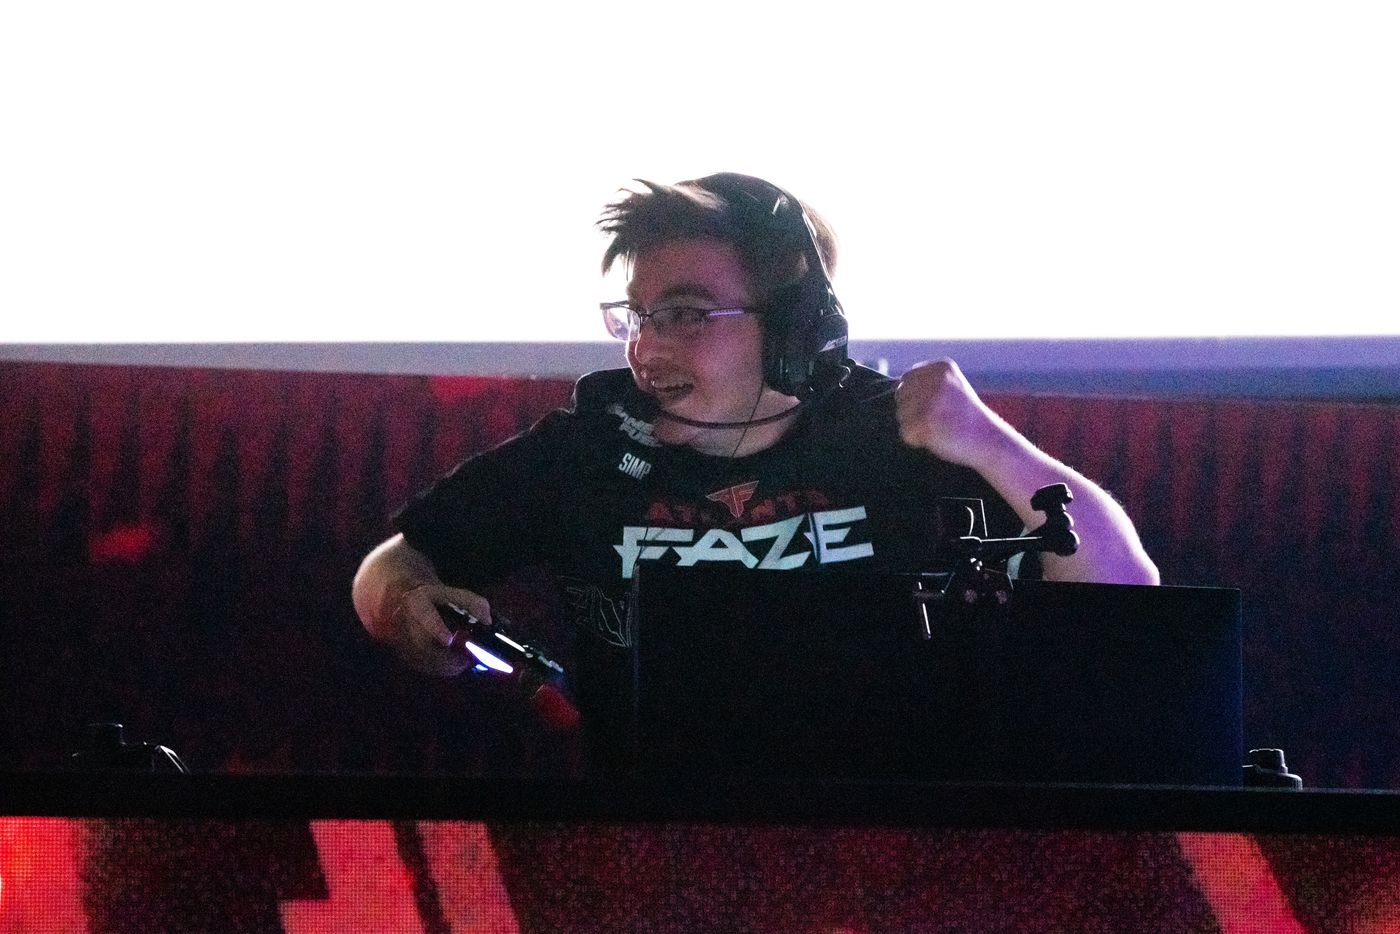 """Chris """"Simp"""" Lehr of the Atlanta FaZe celebrates as FaZe beats the Toronto Ultra  during the Call of Duty league playoffs championship round at the Galen Center on Sunday, August 22, 2021 in Los Angeles, California. The Atlanta FaZe beat the Toronto Ultra 5 - 3. (Justin L. Stewart/Special Contributor)"""